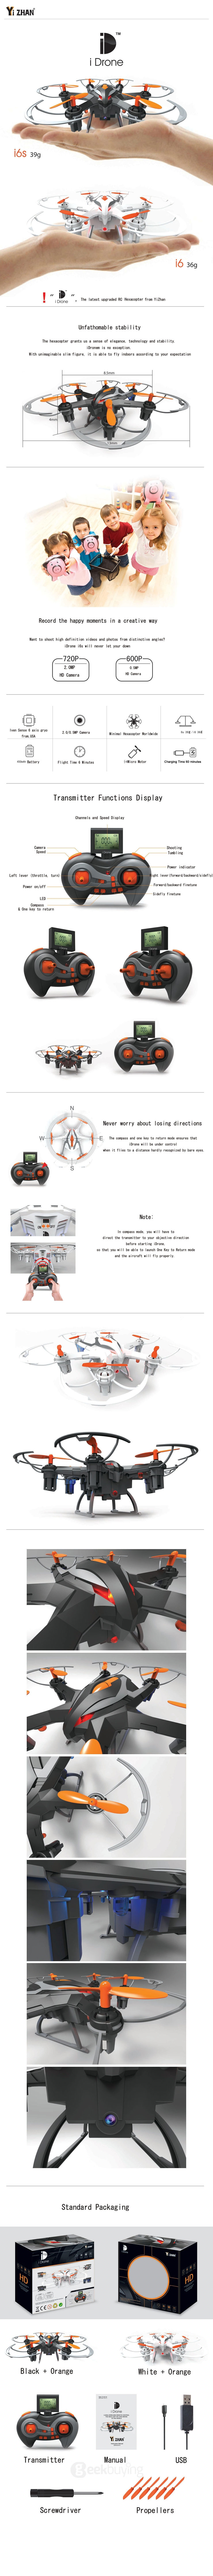 YiZhan i6s 2MP Camera 2.4G 4CH 6Axis One Key Return Nano Hexacopter RTF - White